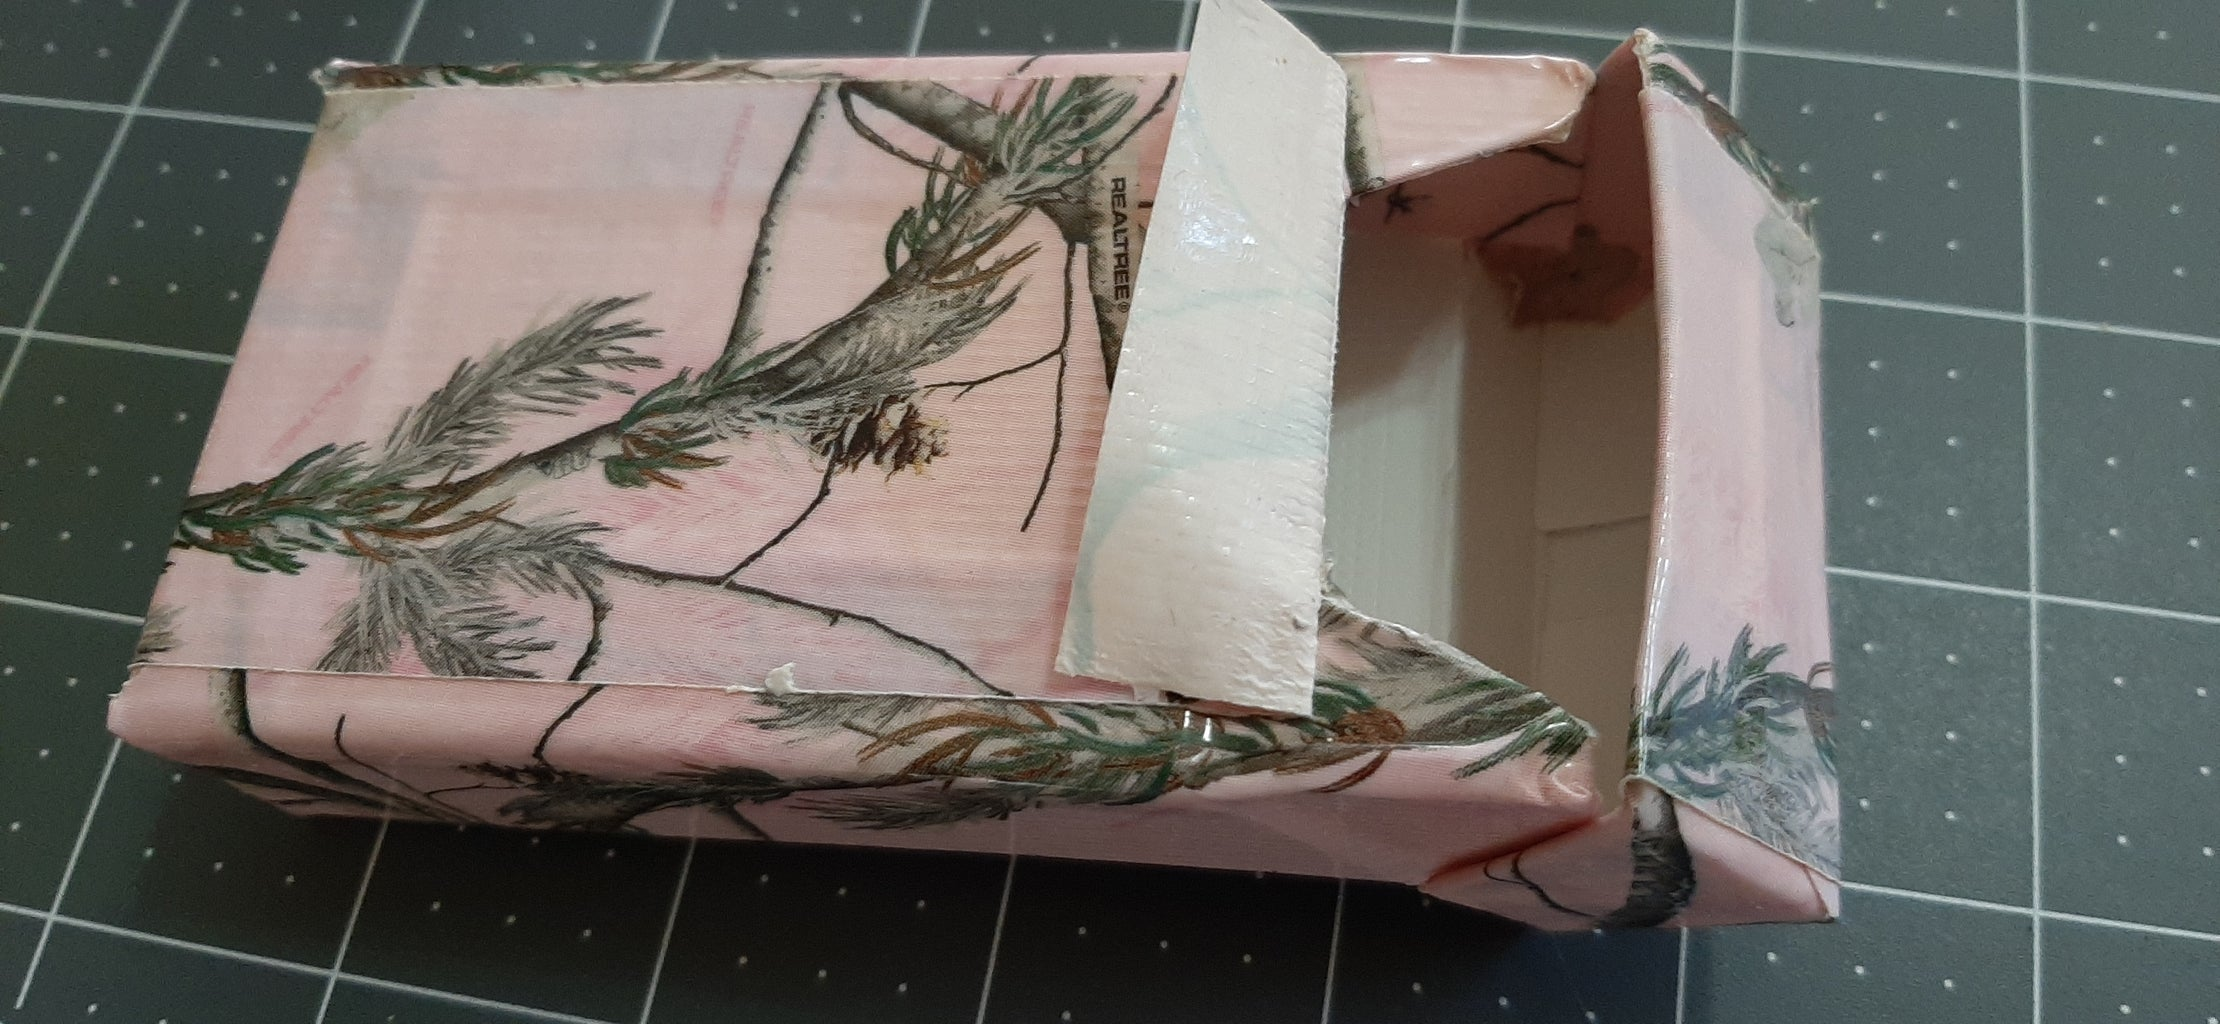 Applying Decorative Tape to Front and Back: